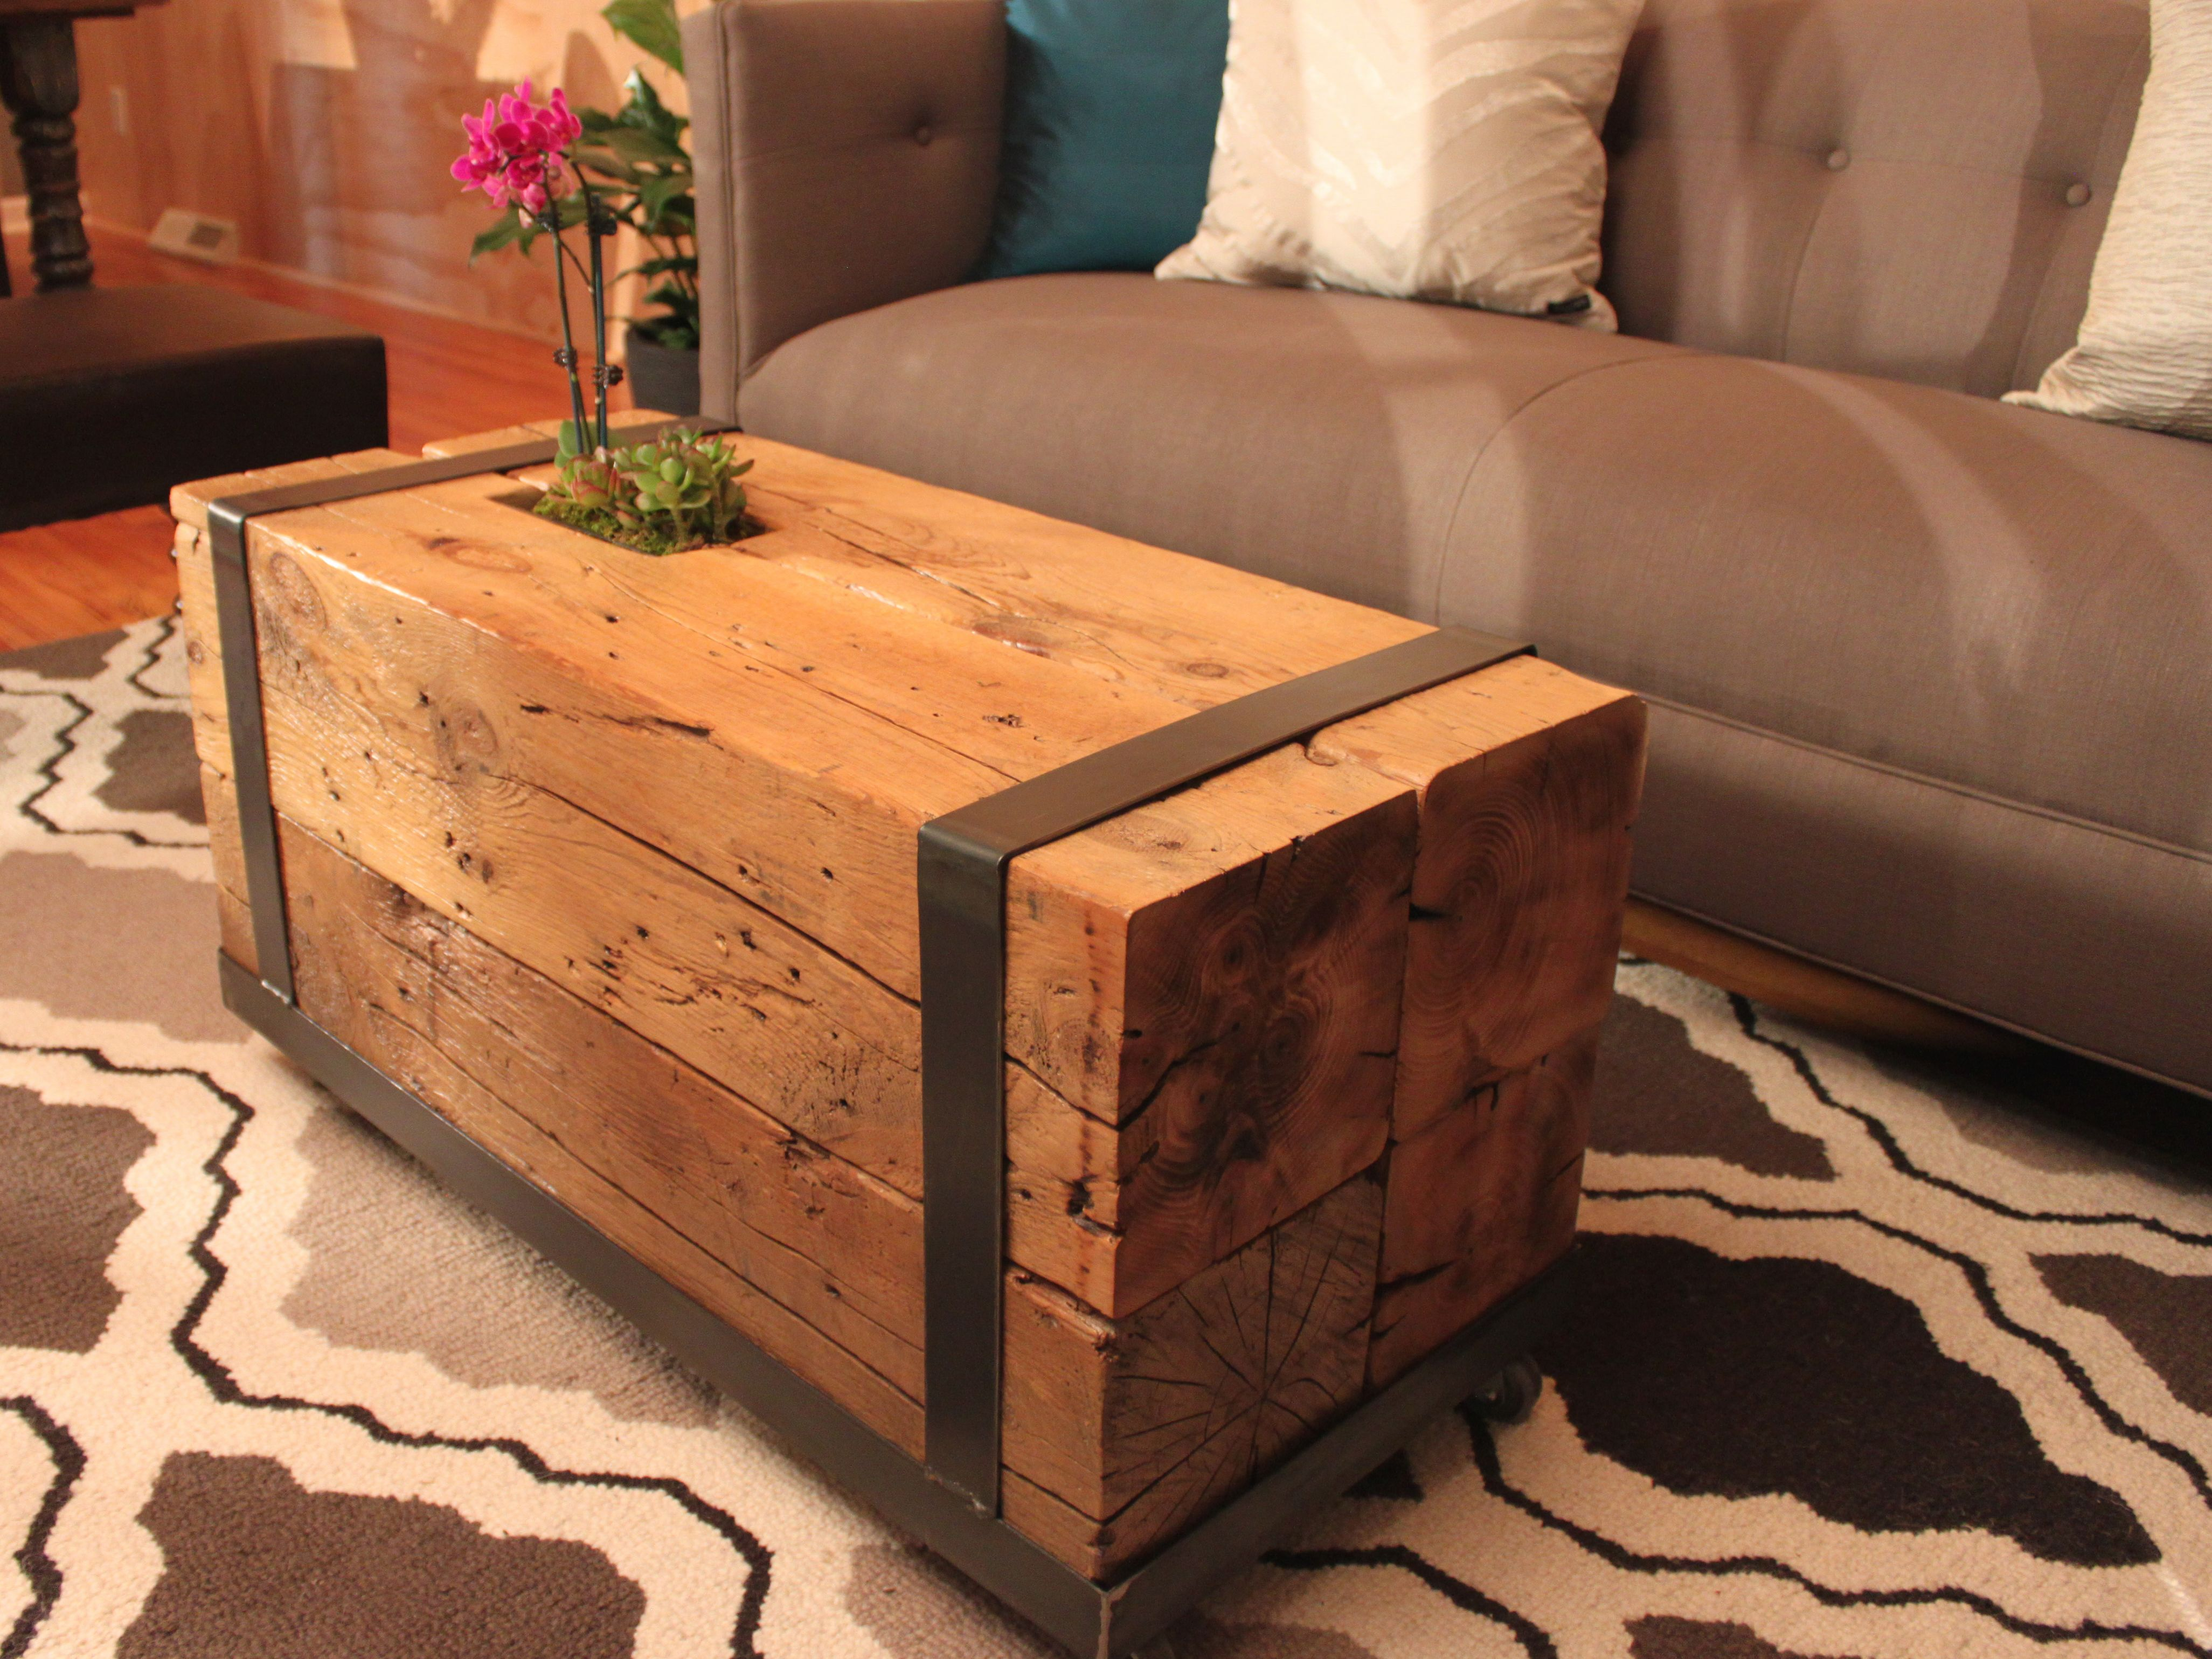 upcycled furniture ideas Upcycling Crafts, Projects and